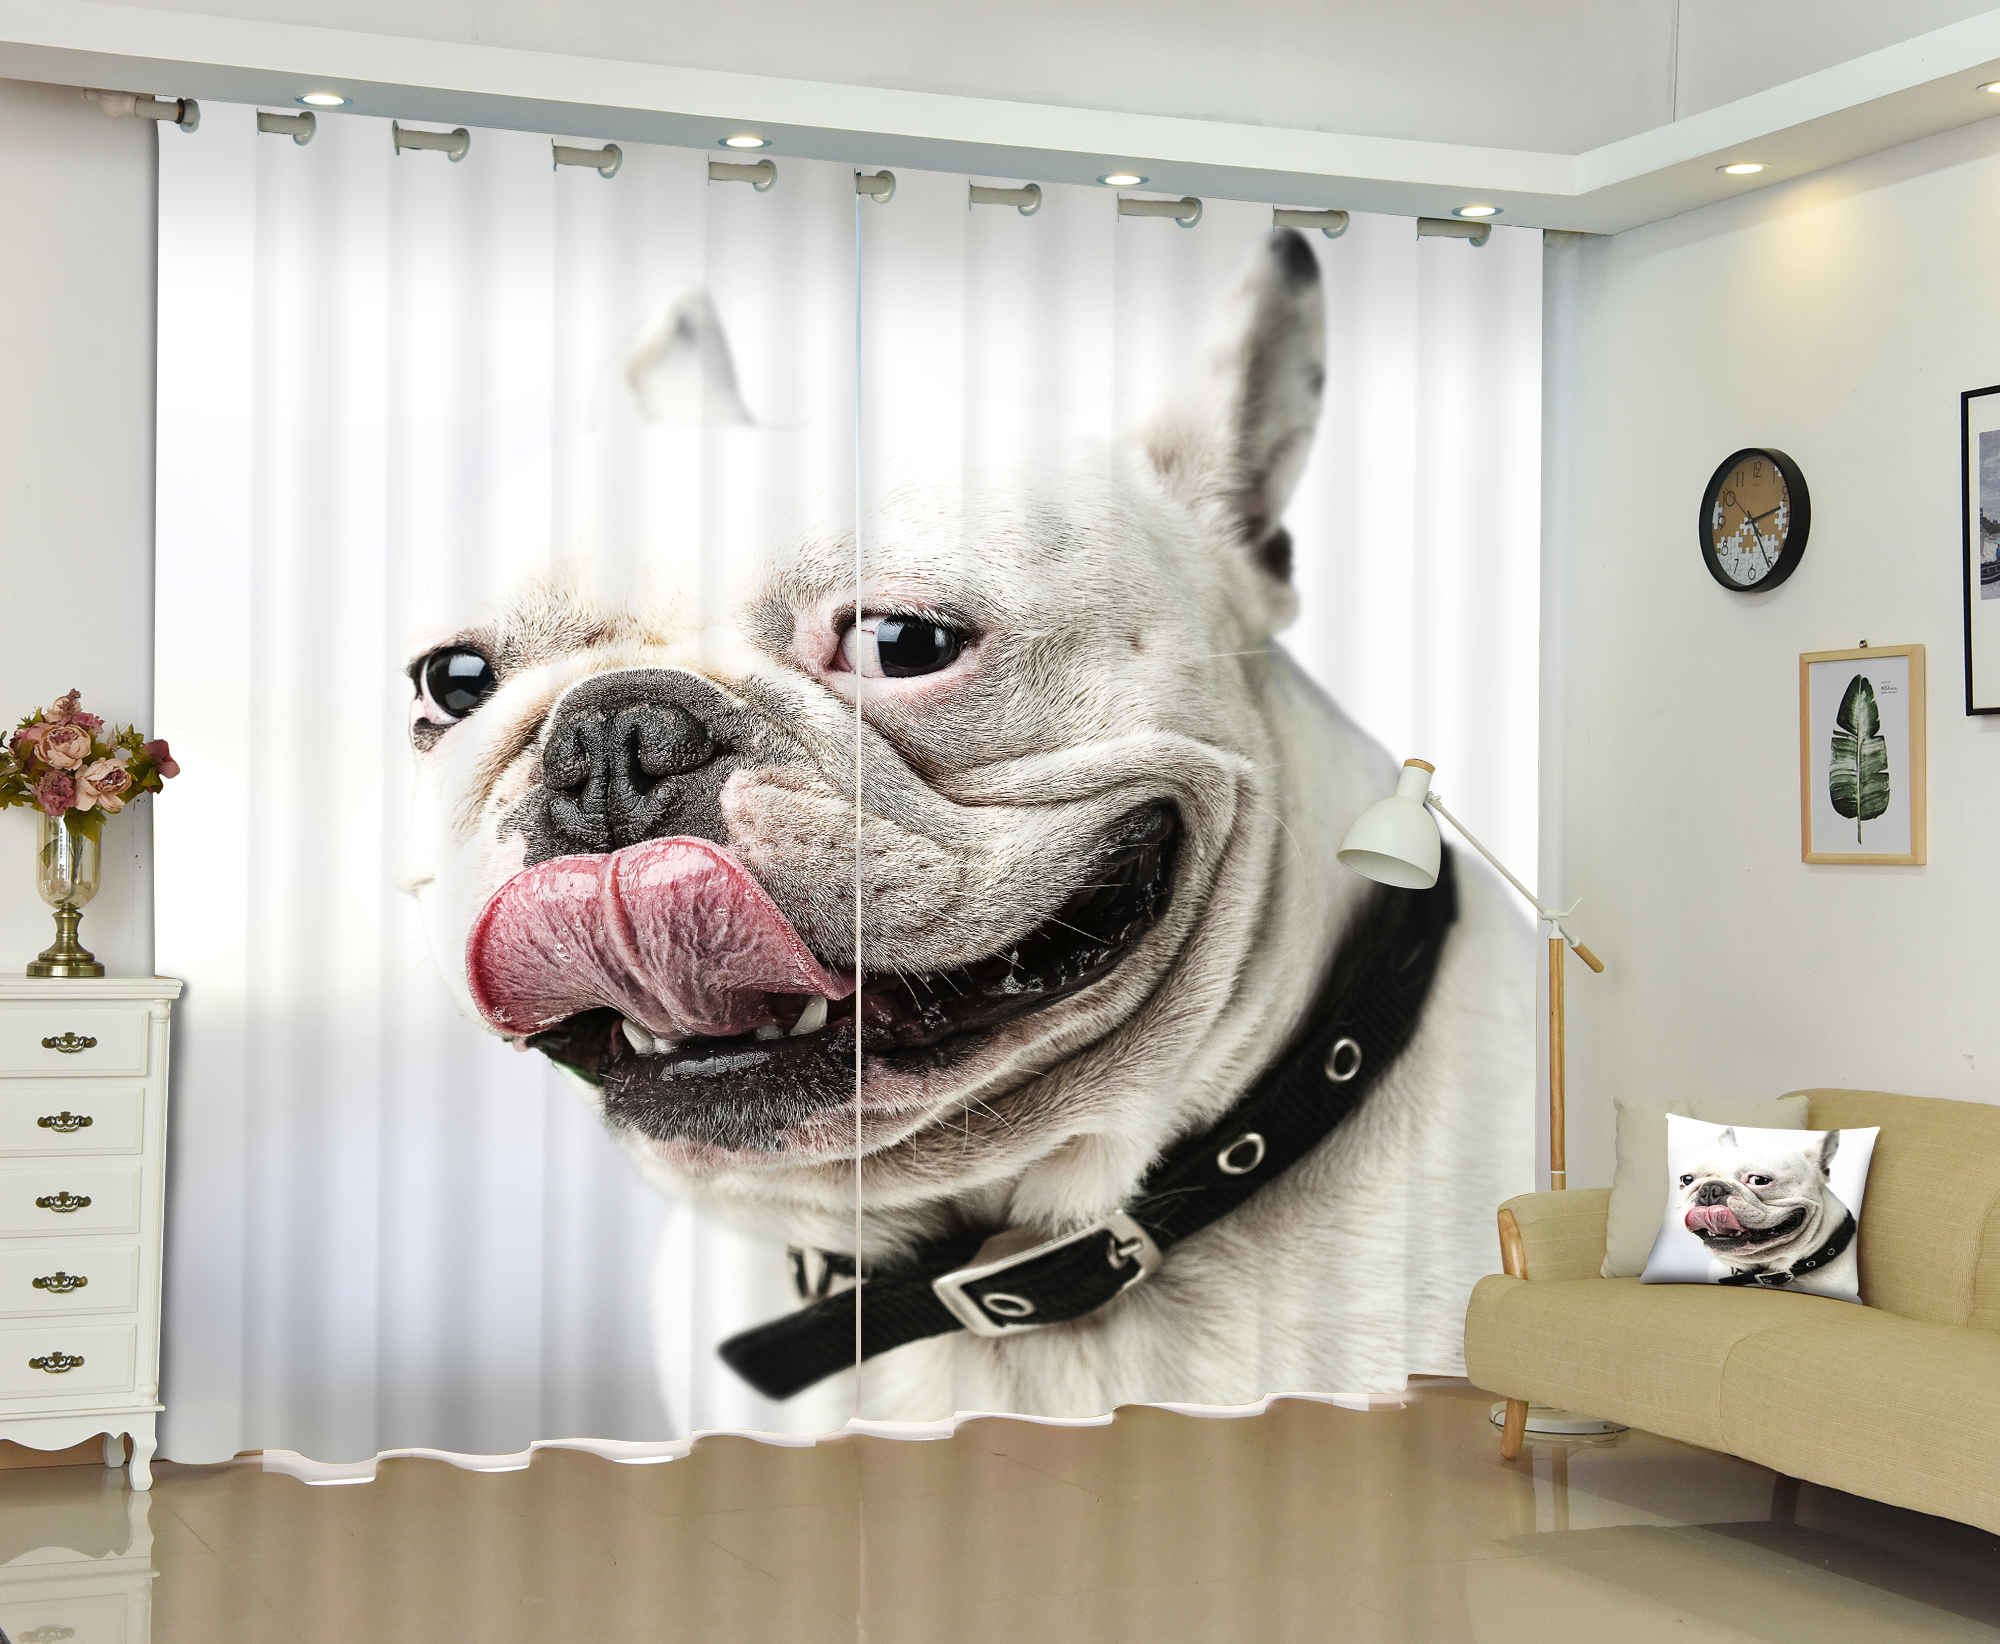 New Sweet Dog Curtains 3D Animal Bedding Room Window Curtain Backout Shade Curtain for Hotel Customized Size Availzble